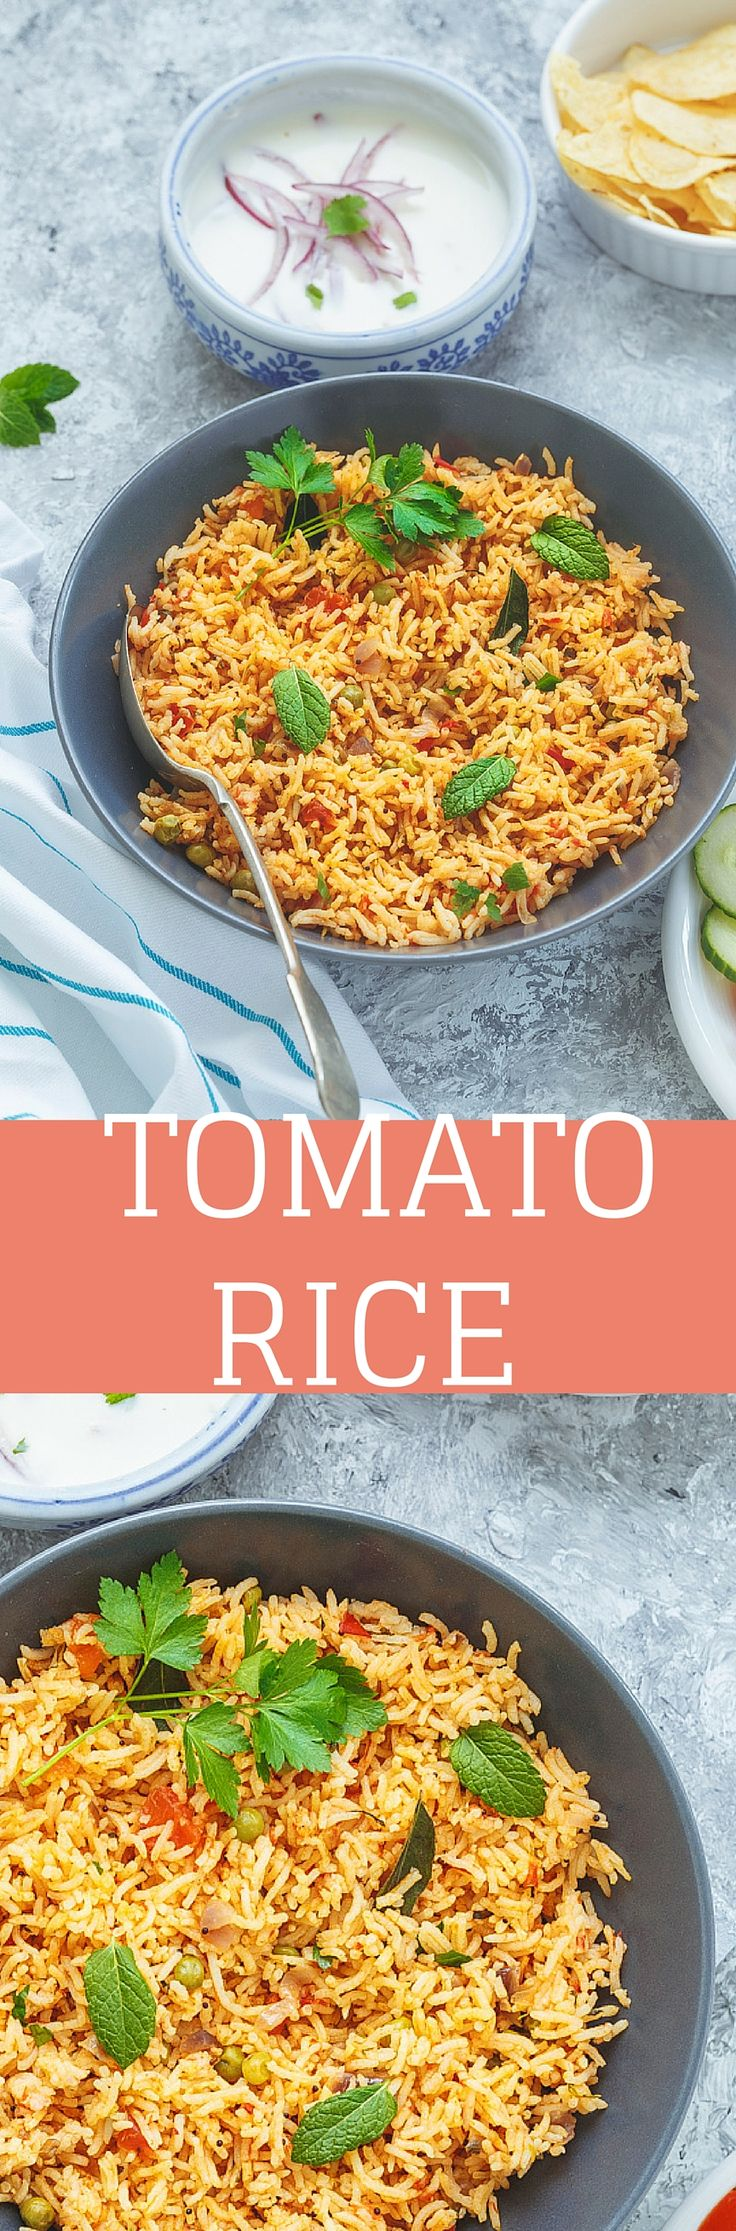 South Indian Tomato Rice is an easy One Pot Meal that does not require many special ingredients, yet they are palatable. Serve them with Potato Crisps, Salad and Raitha for a Hit Combination.